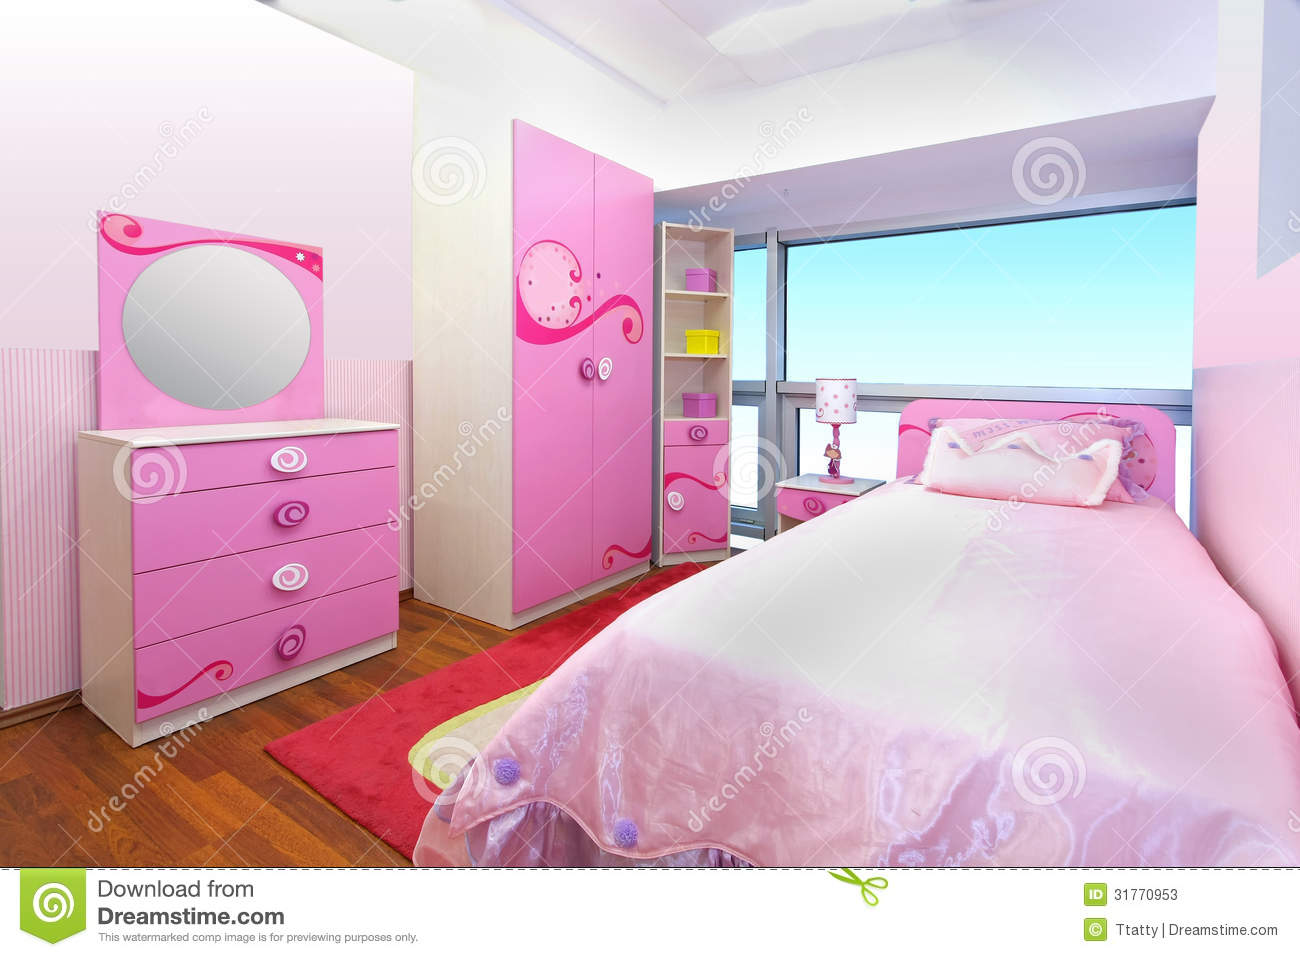 pink bedroom stock photos image 31770953